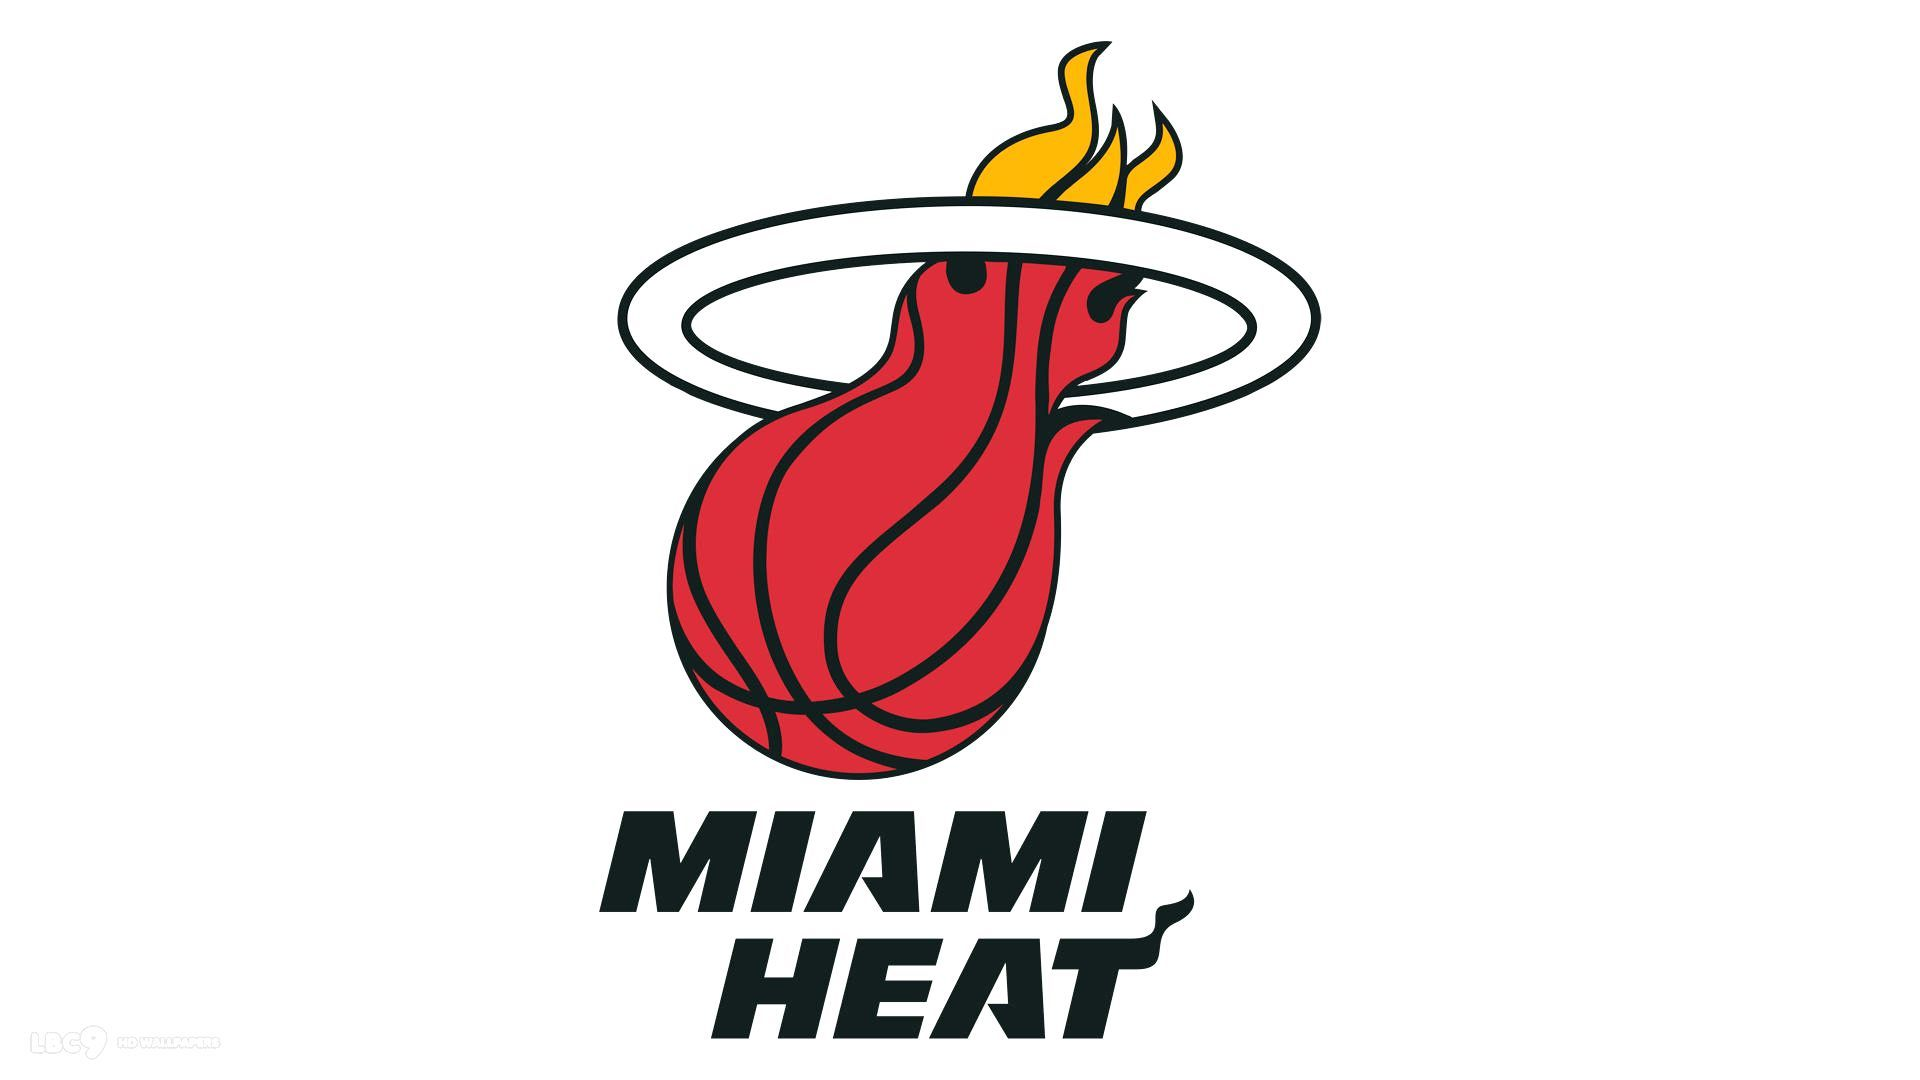 Miami Heat Wallpaper 16 1920x1080